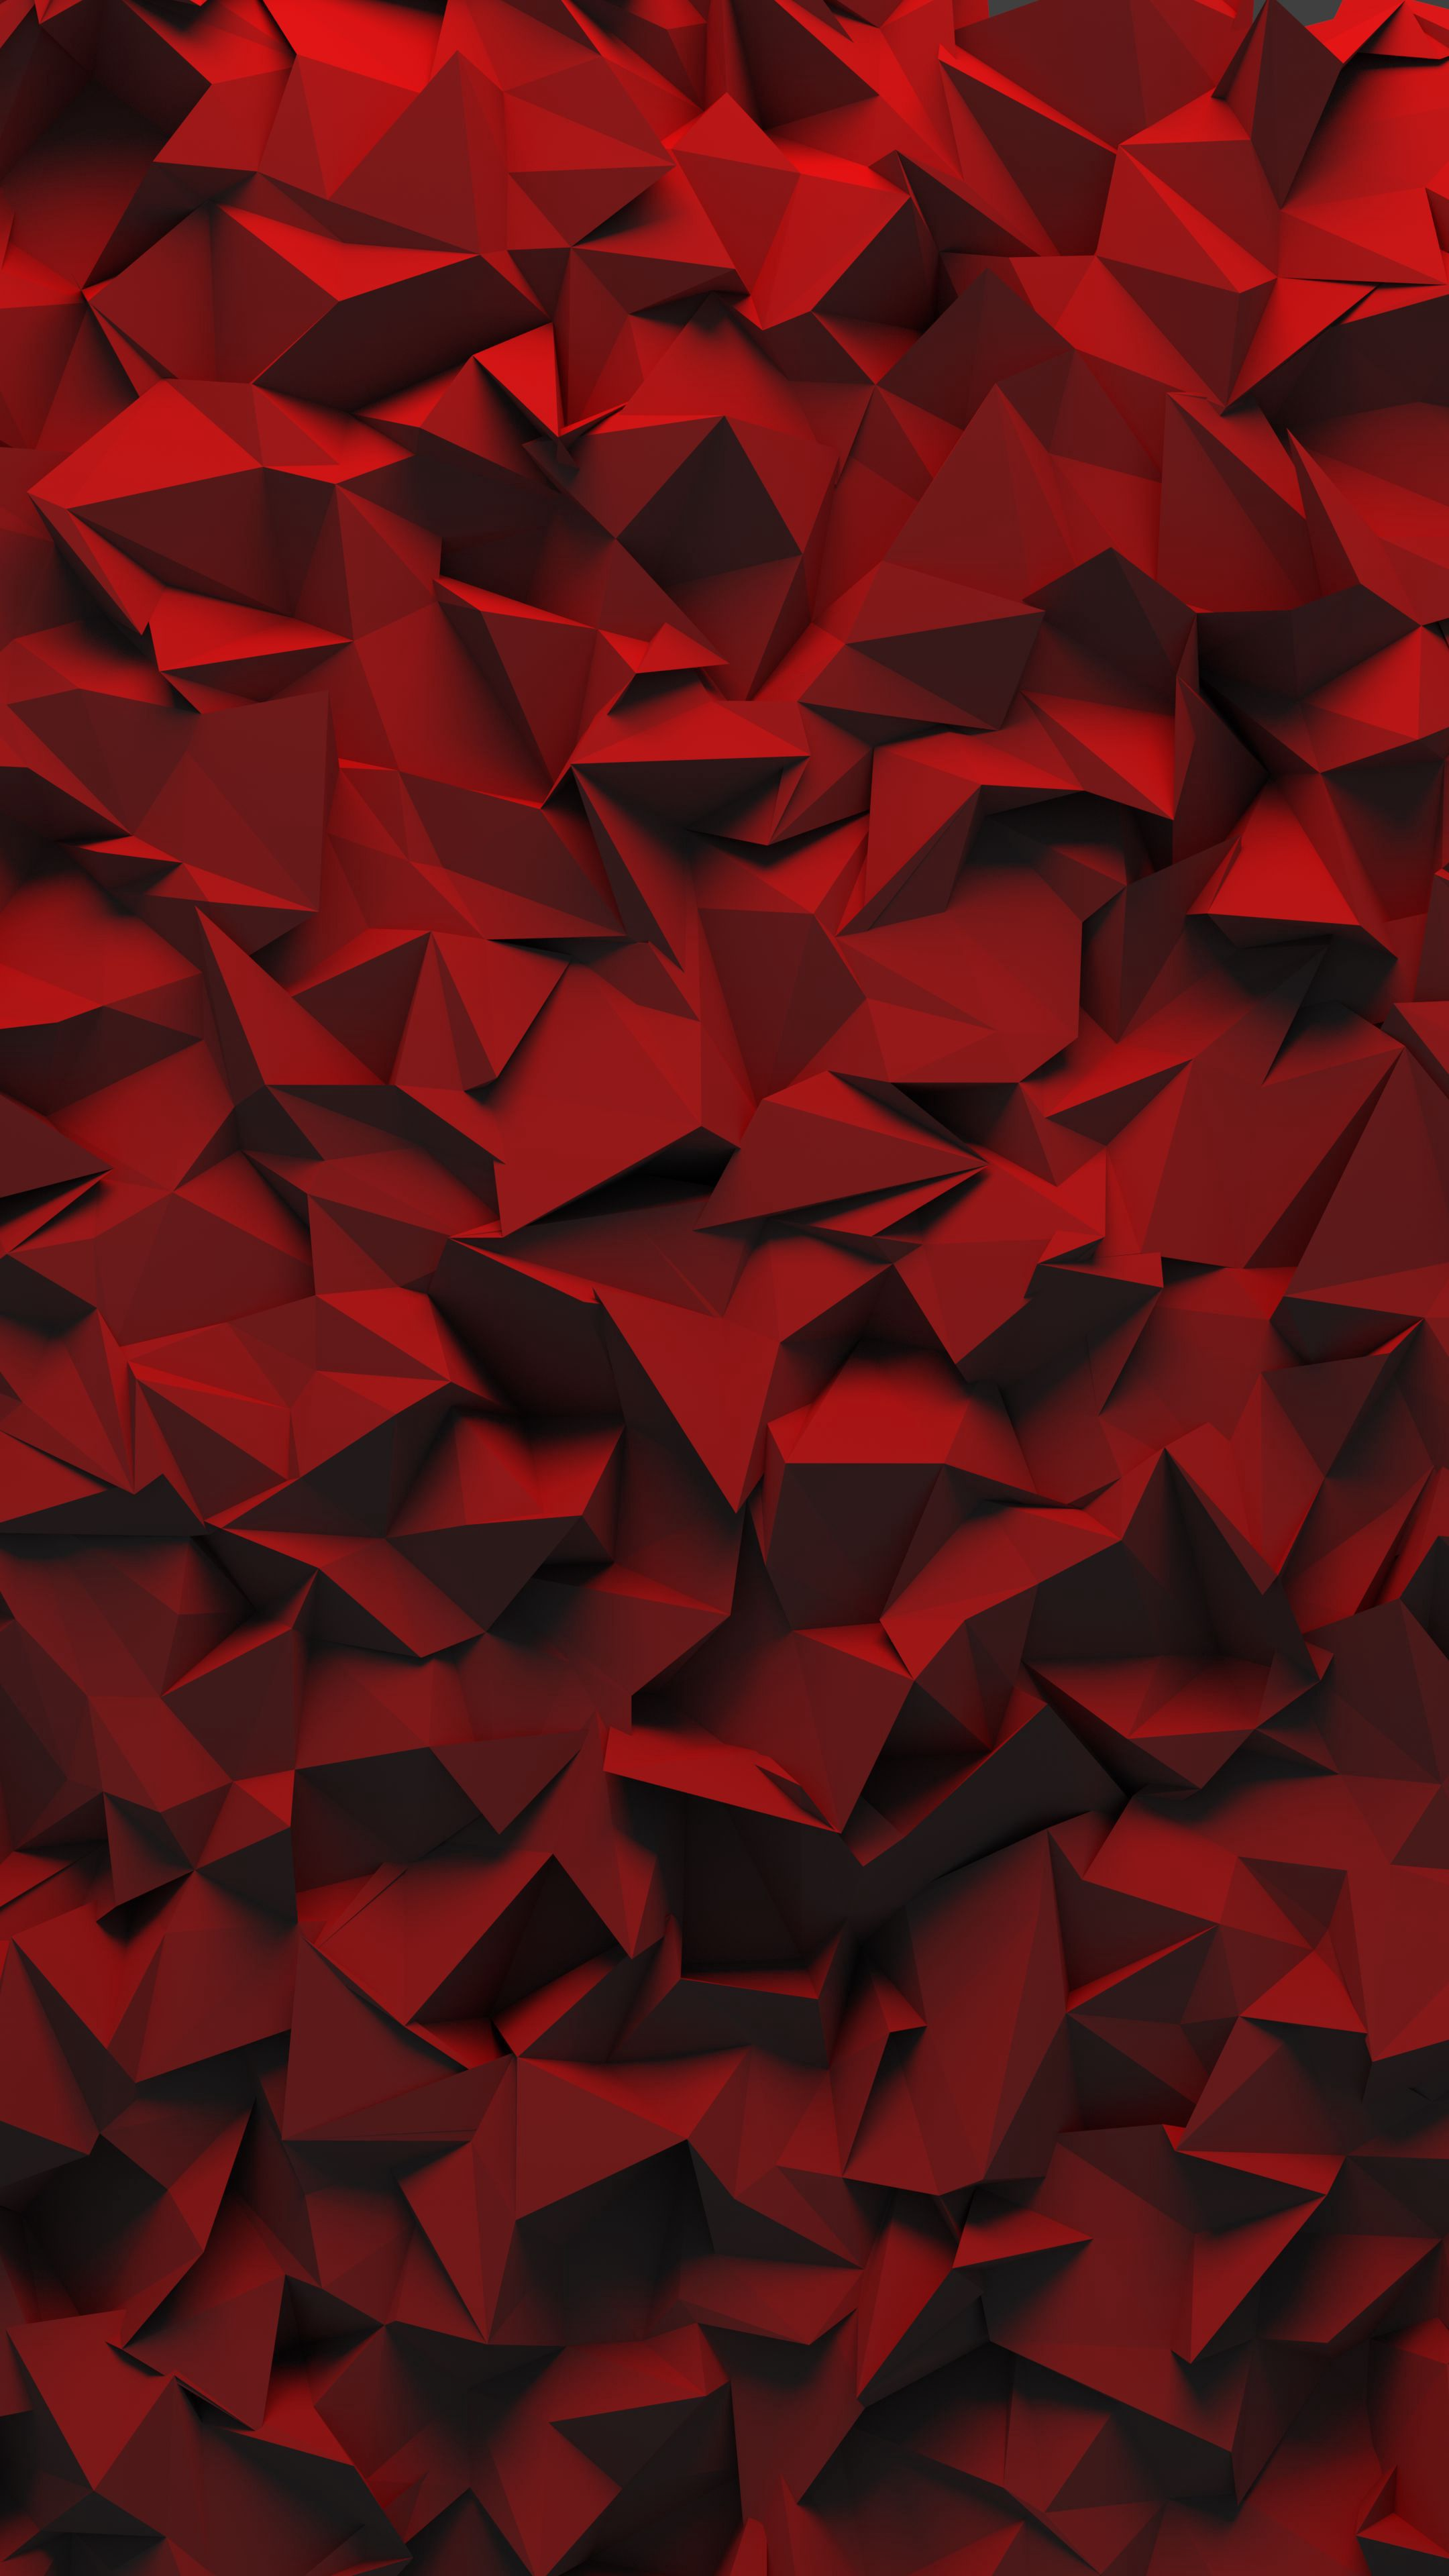 58899 download wallpaper Texture, Textures, Relief, Triangle screensavers and pictures for free